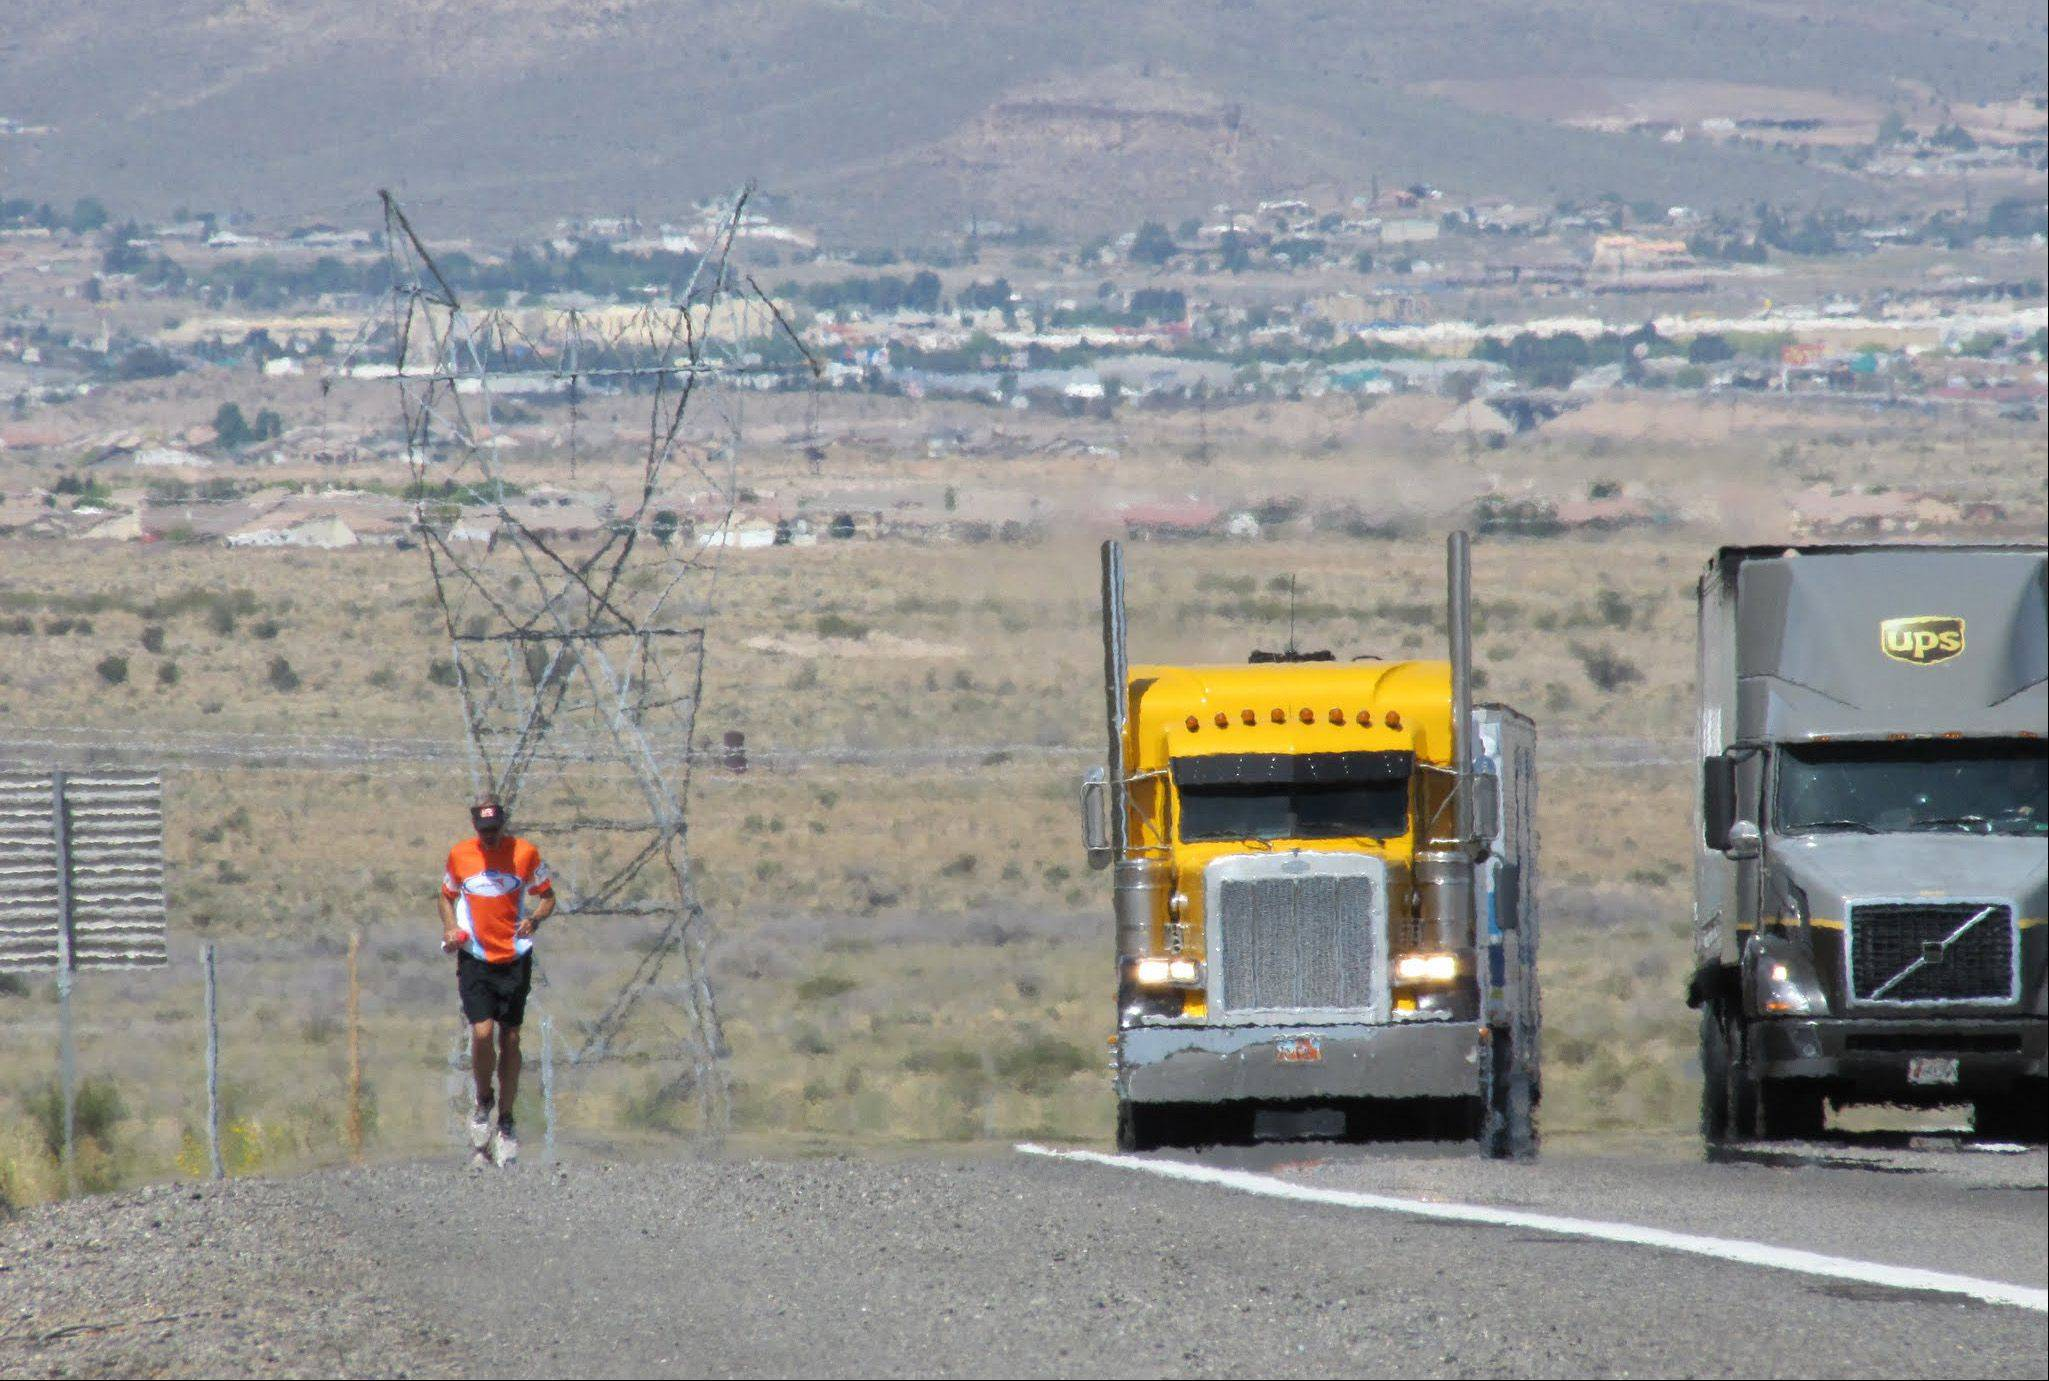 Steve Spear is an unlikely candidate for a run across the United States for charity. He hates running. But the former Willow Creek Community Church pastor said he felt called by God to accomplish this effort. Here he is in New Mexico.